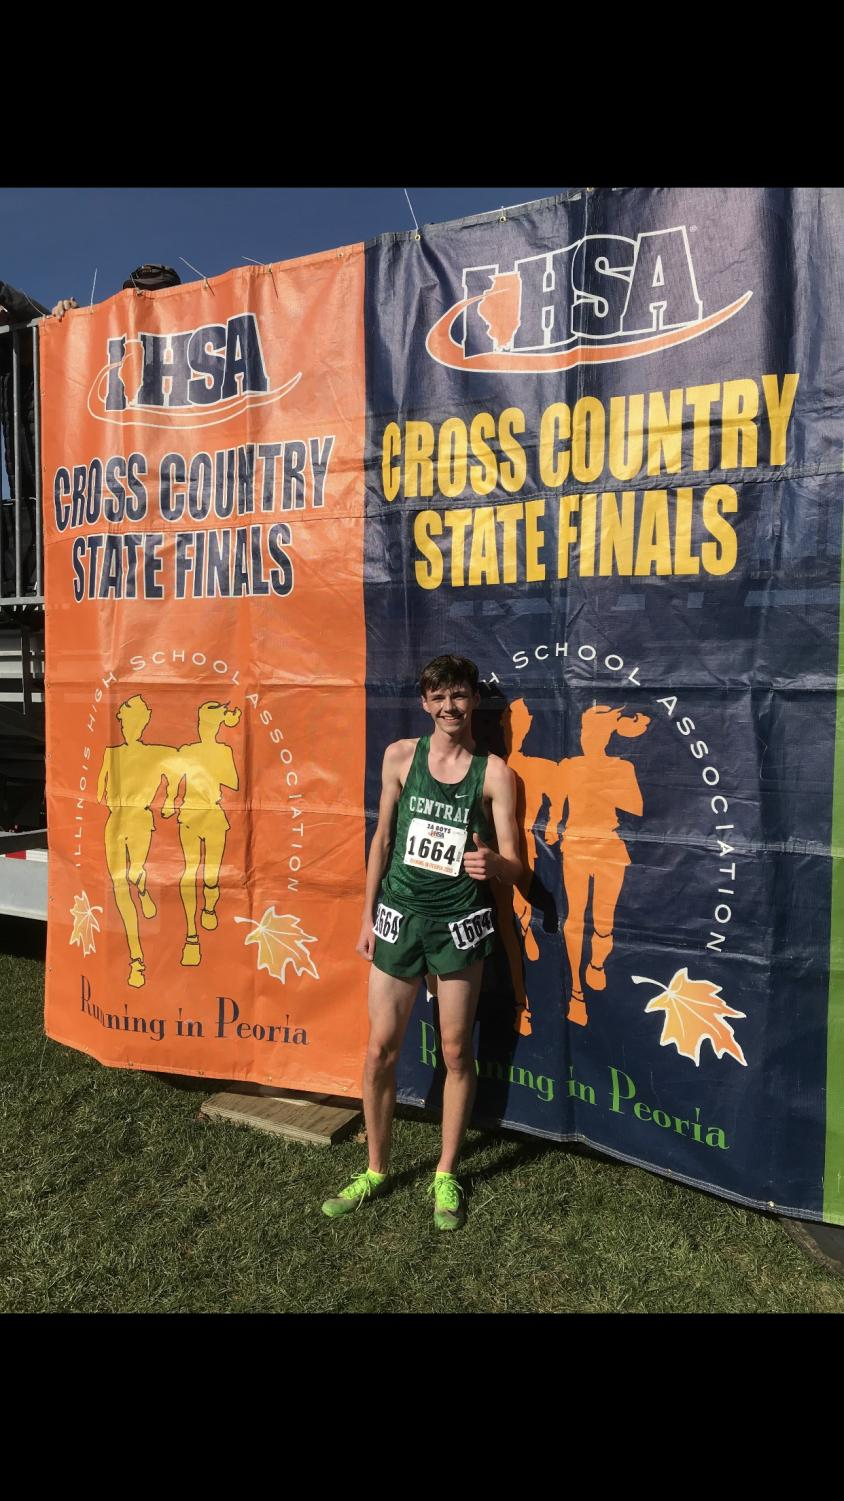 Craig Hundley smiles at the cross country state final banner.